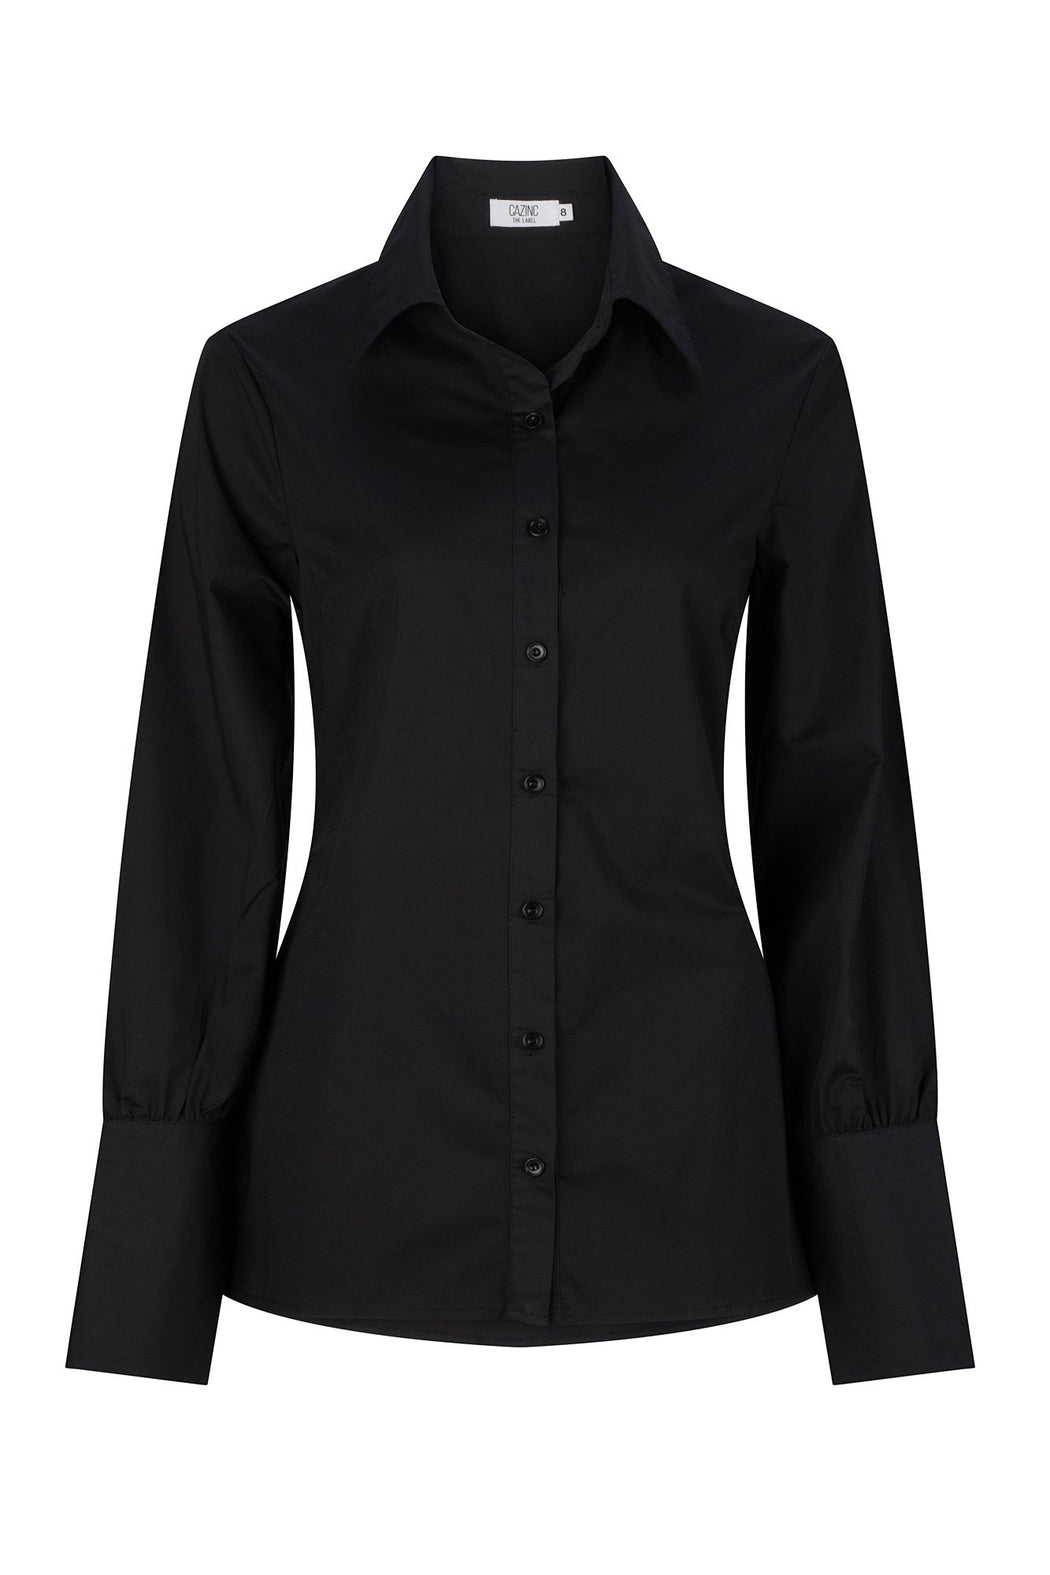 Maddison Shirt - Black